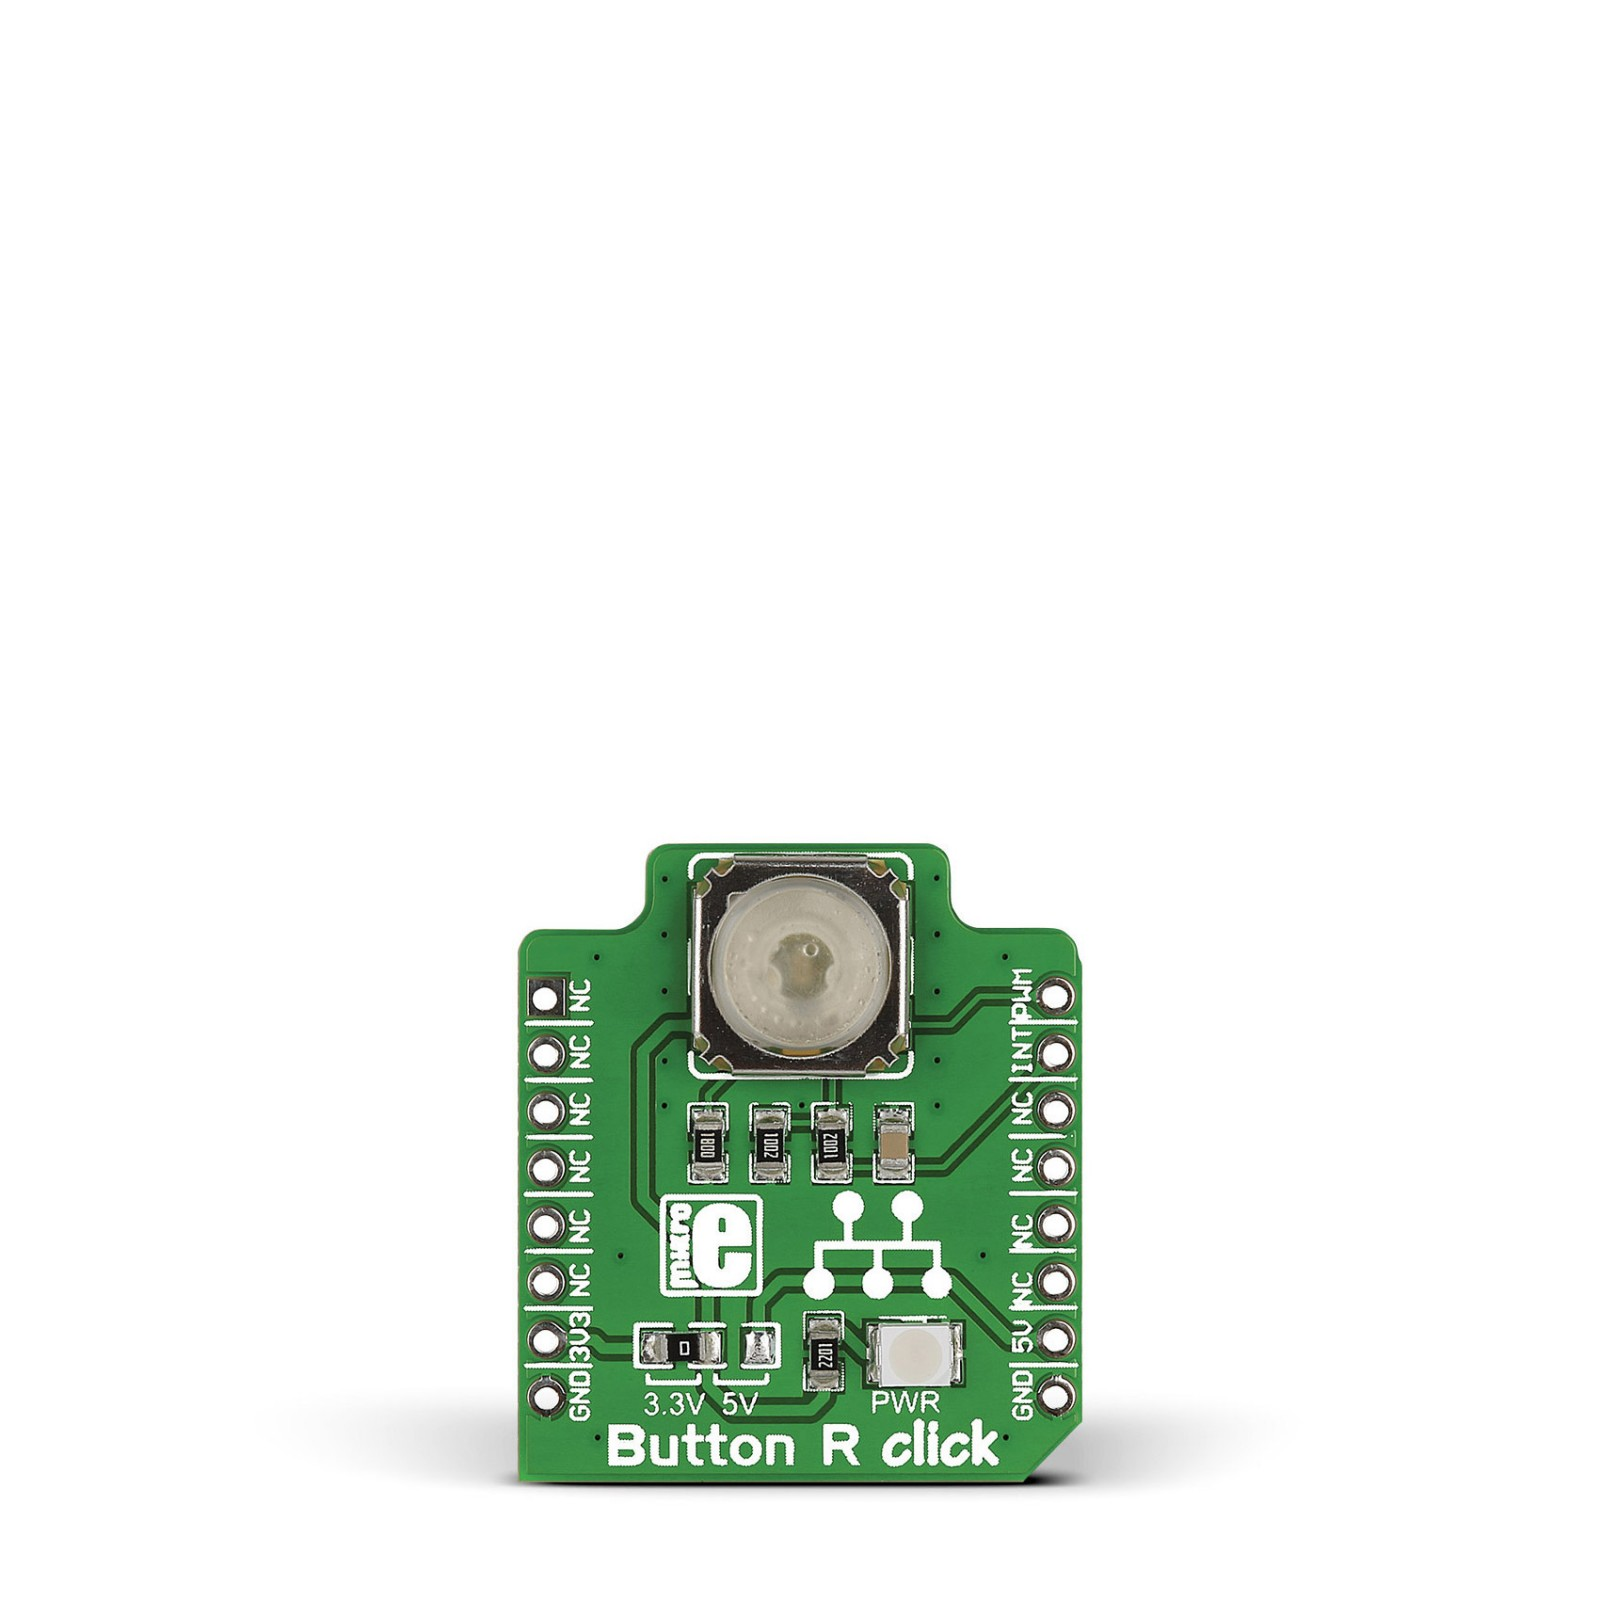 Button R Click Board With Single Pushbutton Red Led Backlight Using Push Switch Pic Microcontroller Mikroc Mgctlbxnmzp Mgctlbxv5112 Mgctlbxlc Mgctlbxpprestashop